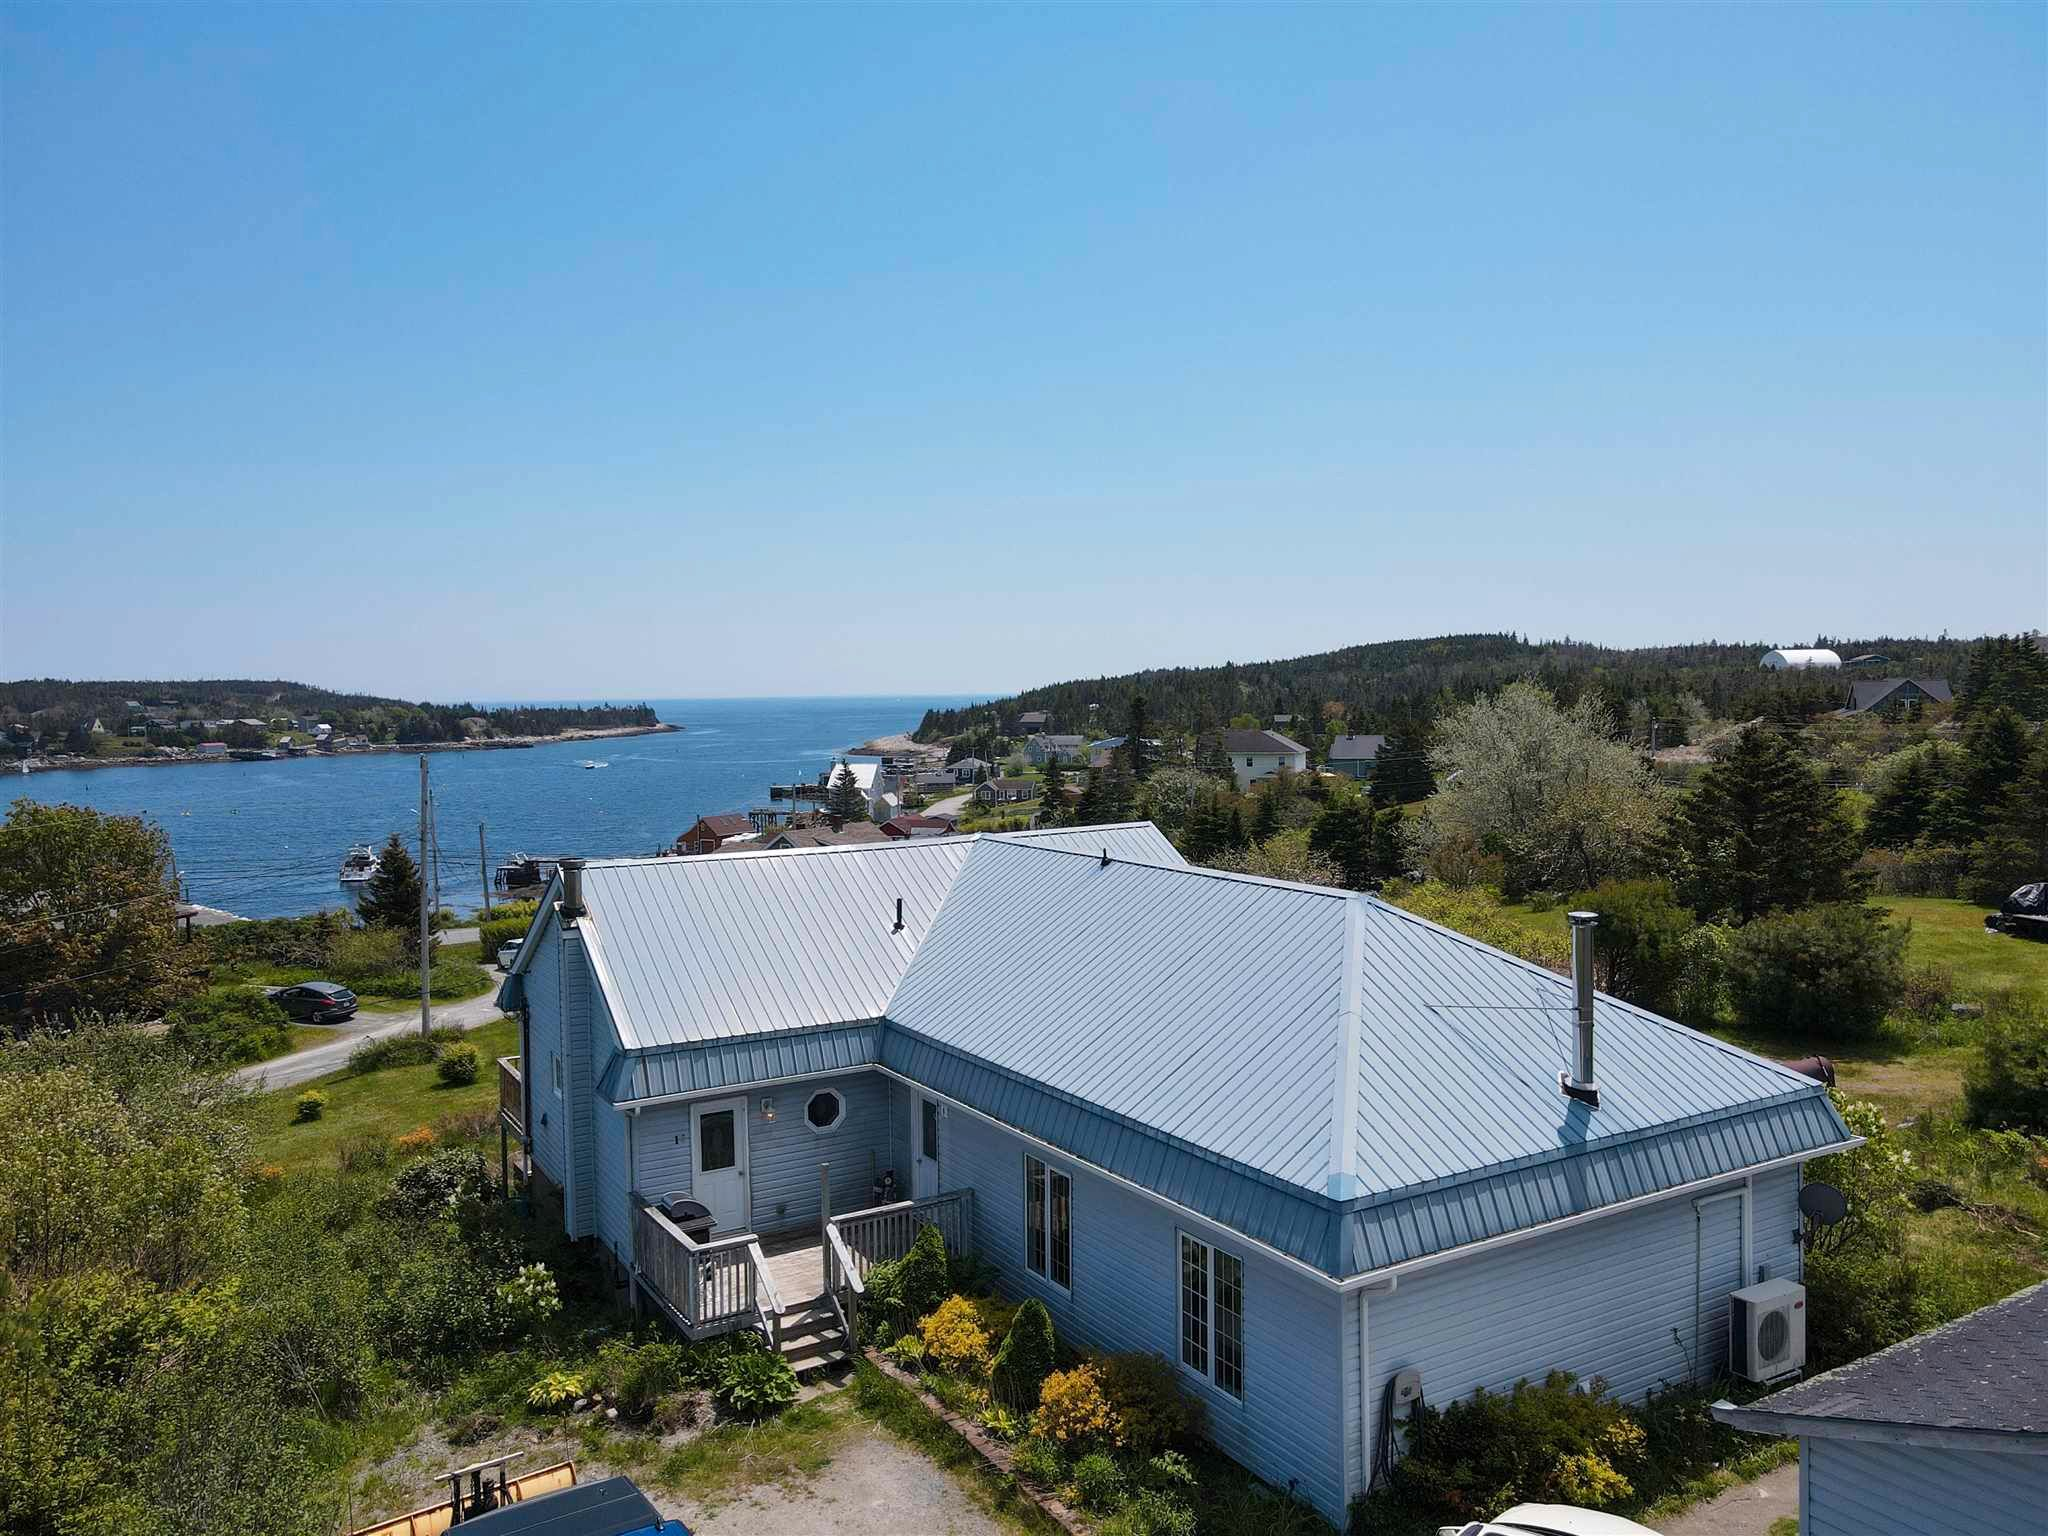 Main Photo: 14 School Road in Ketch Harbour: 9-Harrietsfield, Sambr And Halibut Bay Residential for sale (Halifax-Dartmouth)  : MLS®# 202114484